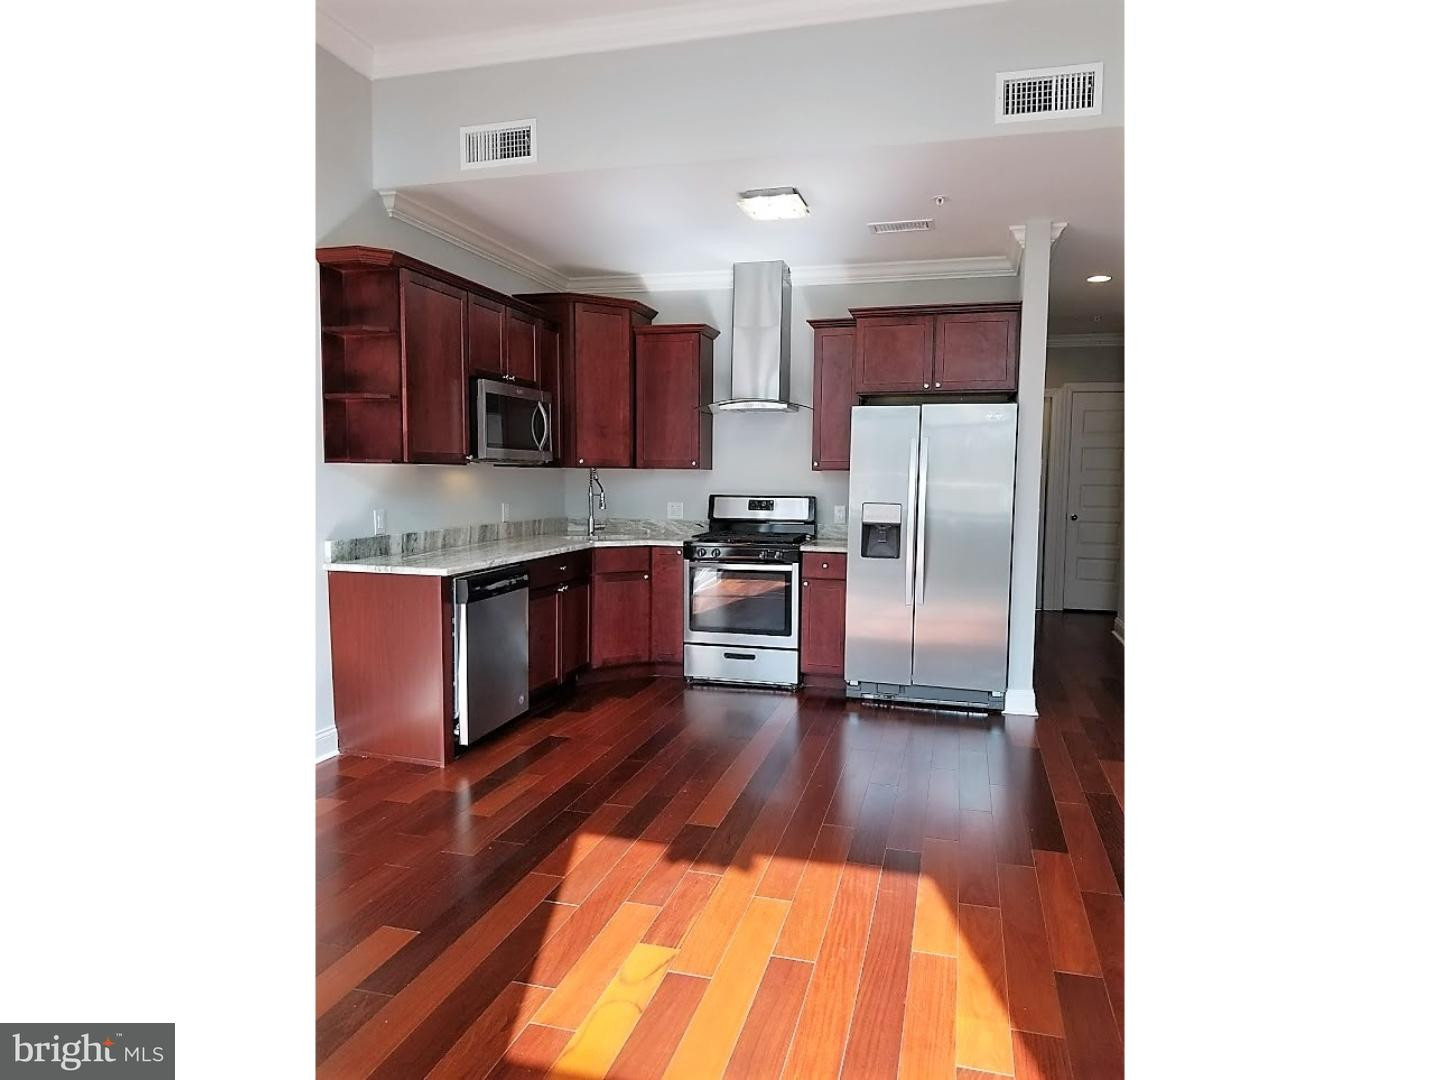 discount hardwood flooring pa of 1421 n 5th st 620 philadelphia pa 19122 philadelphia real estate in philadelphia pa 19122